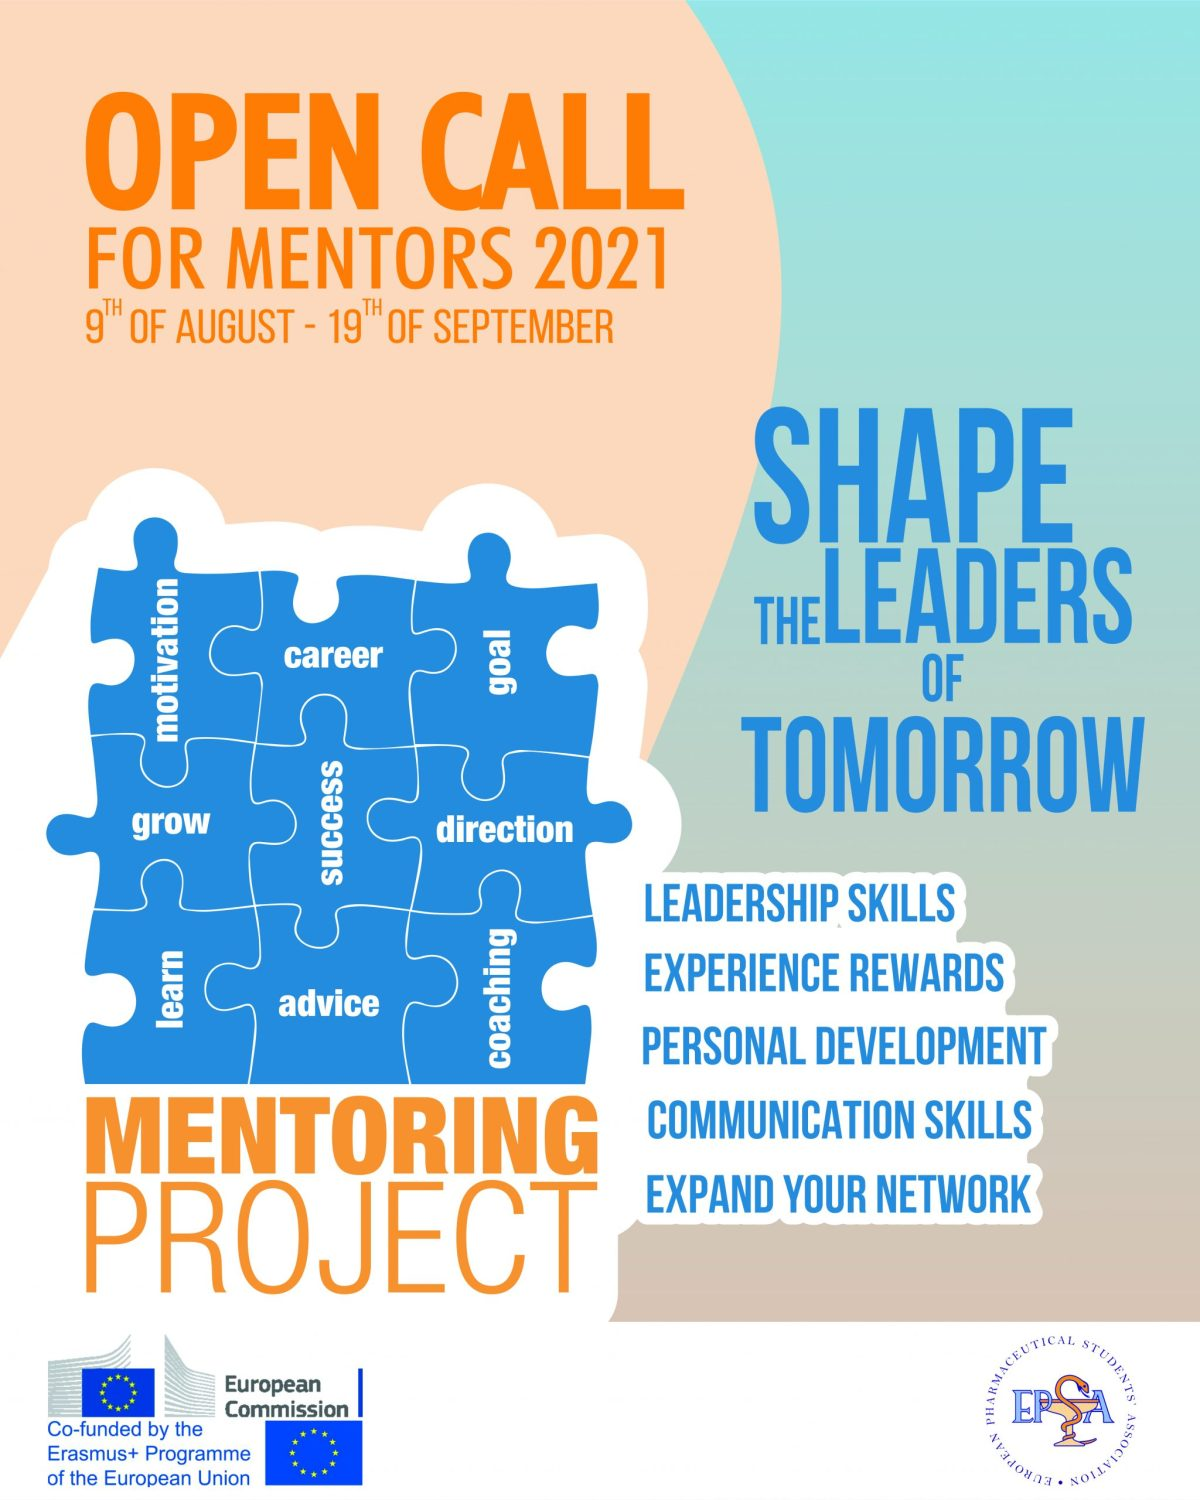 Open Call for mentors 2020 9th of August to 19th of September